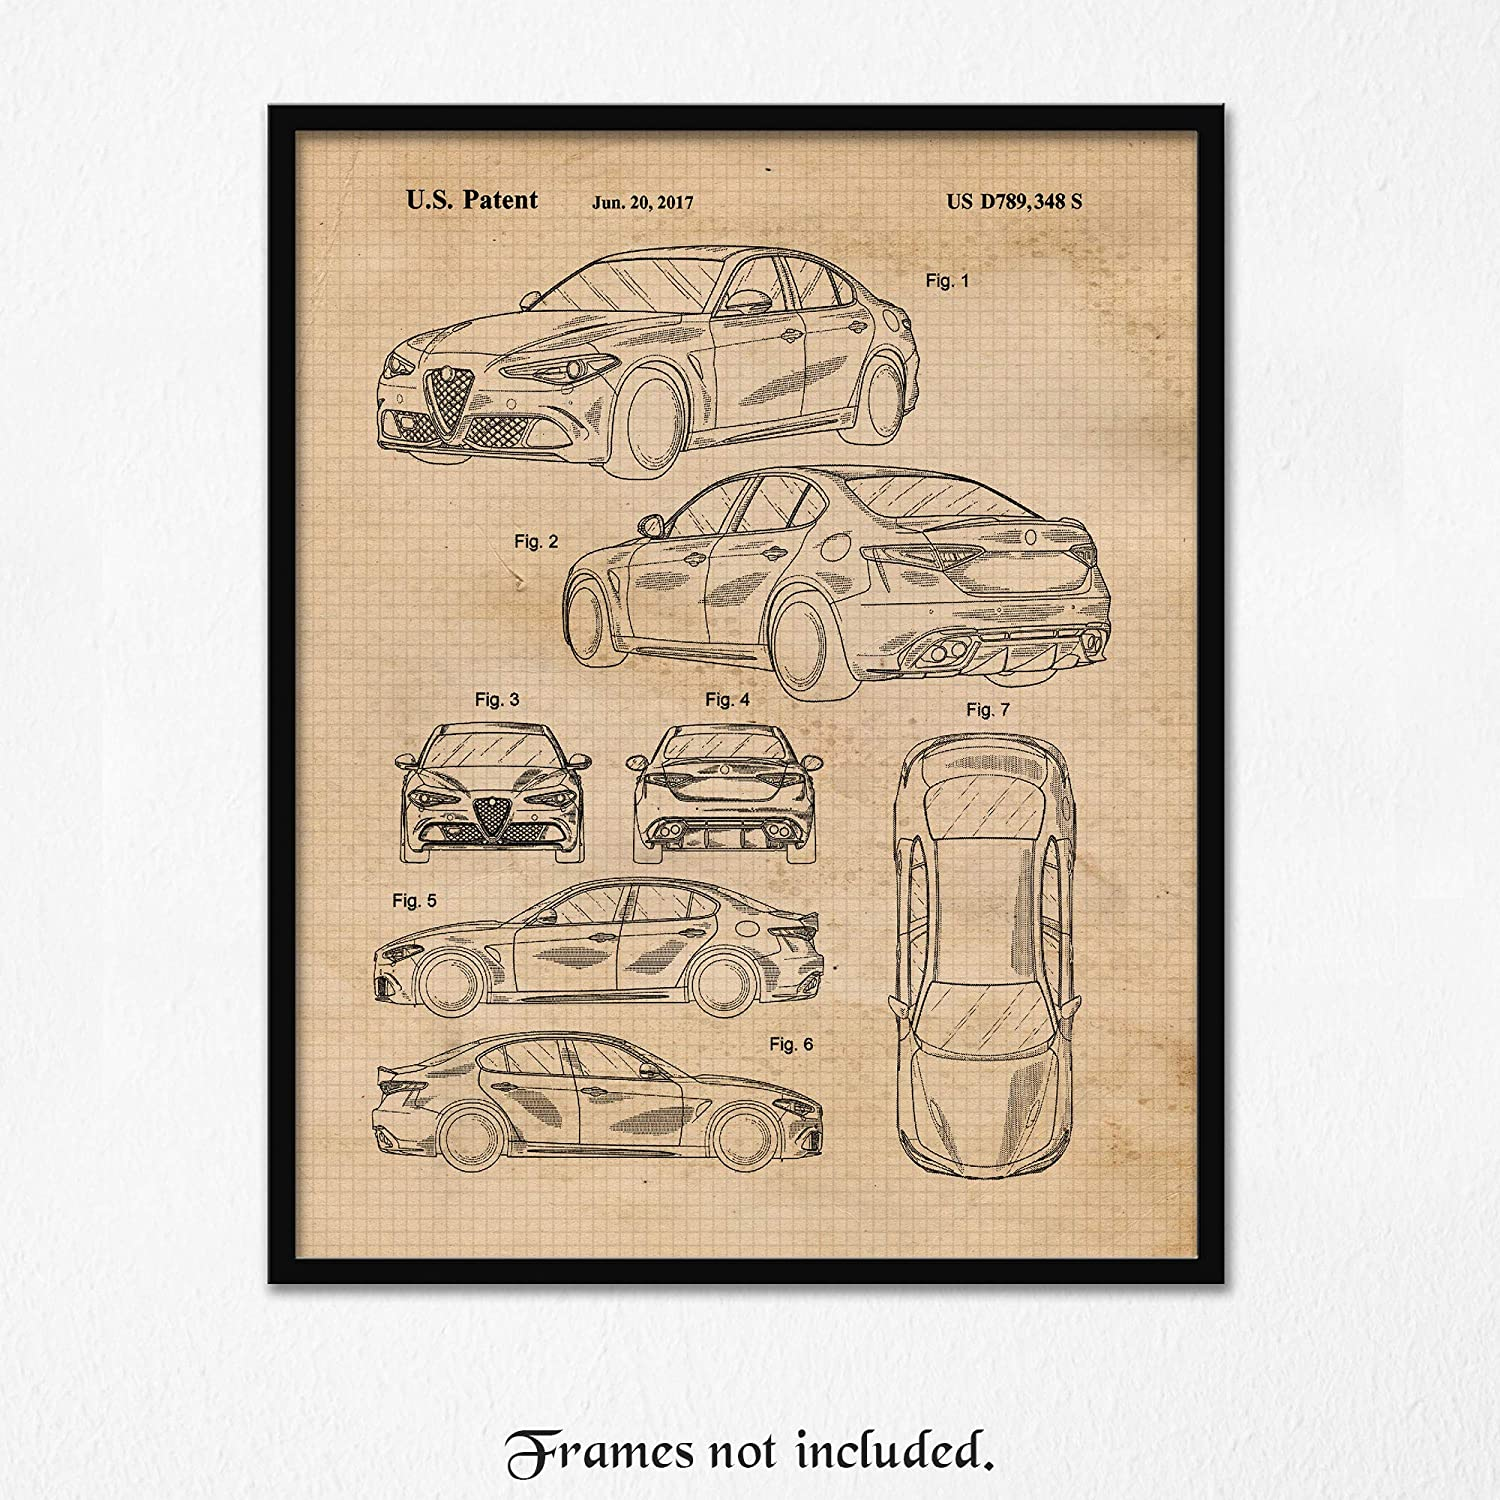 Vintage Alfa Romeo Giulia Patent Poster Prints, Set of 1 (11x14) Unframed Photo, Wall Art Decor Gifts Under 15 for Home, Office, Garage, Man Cave, College Student, Teacher, Italy Cars & Coffee Fan